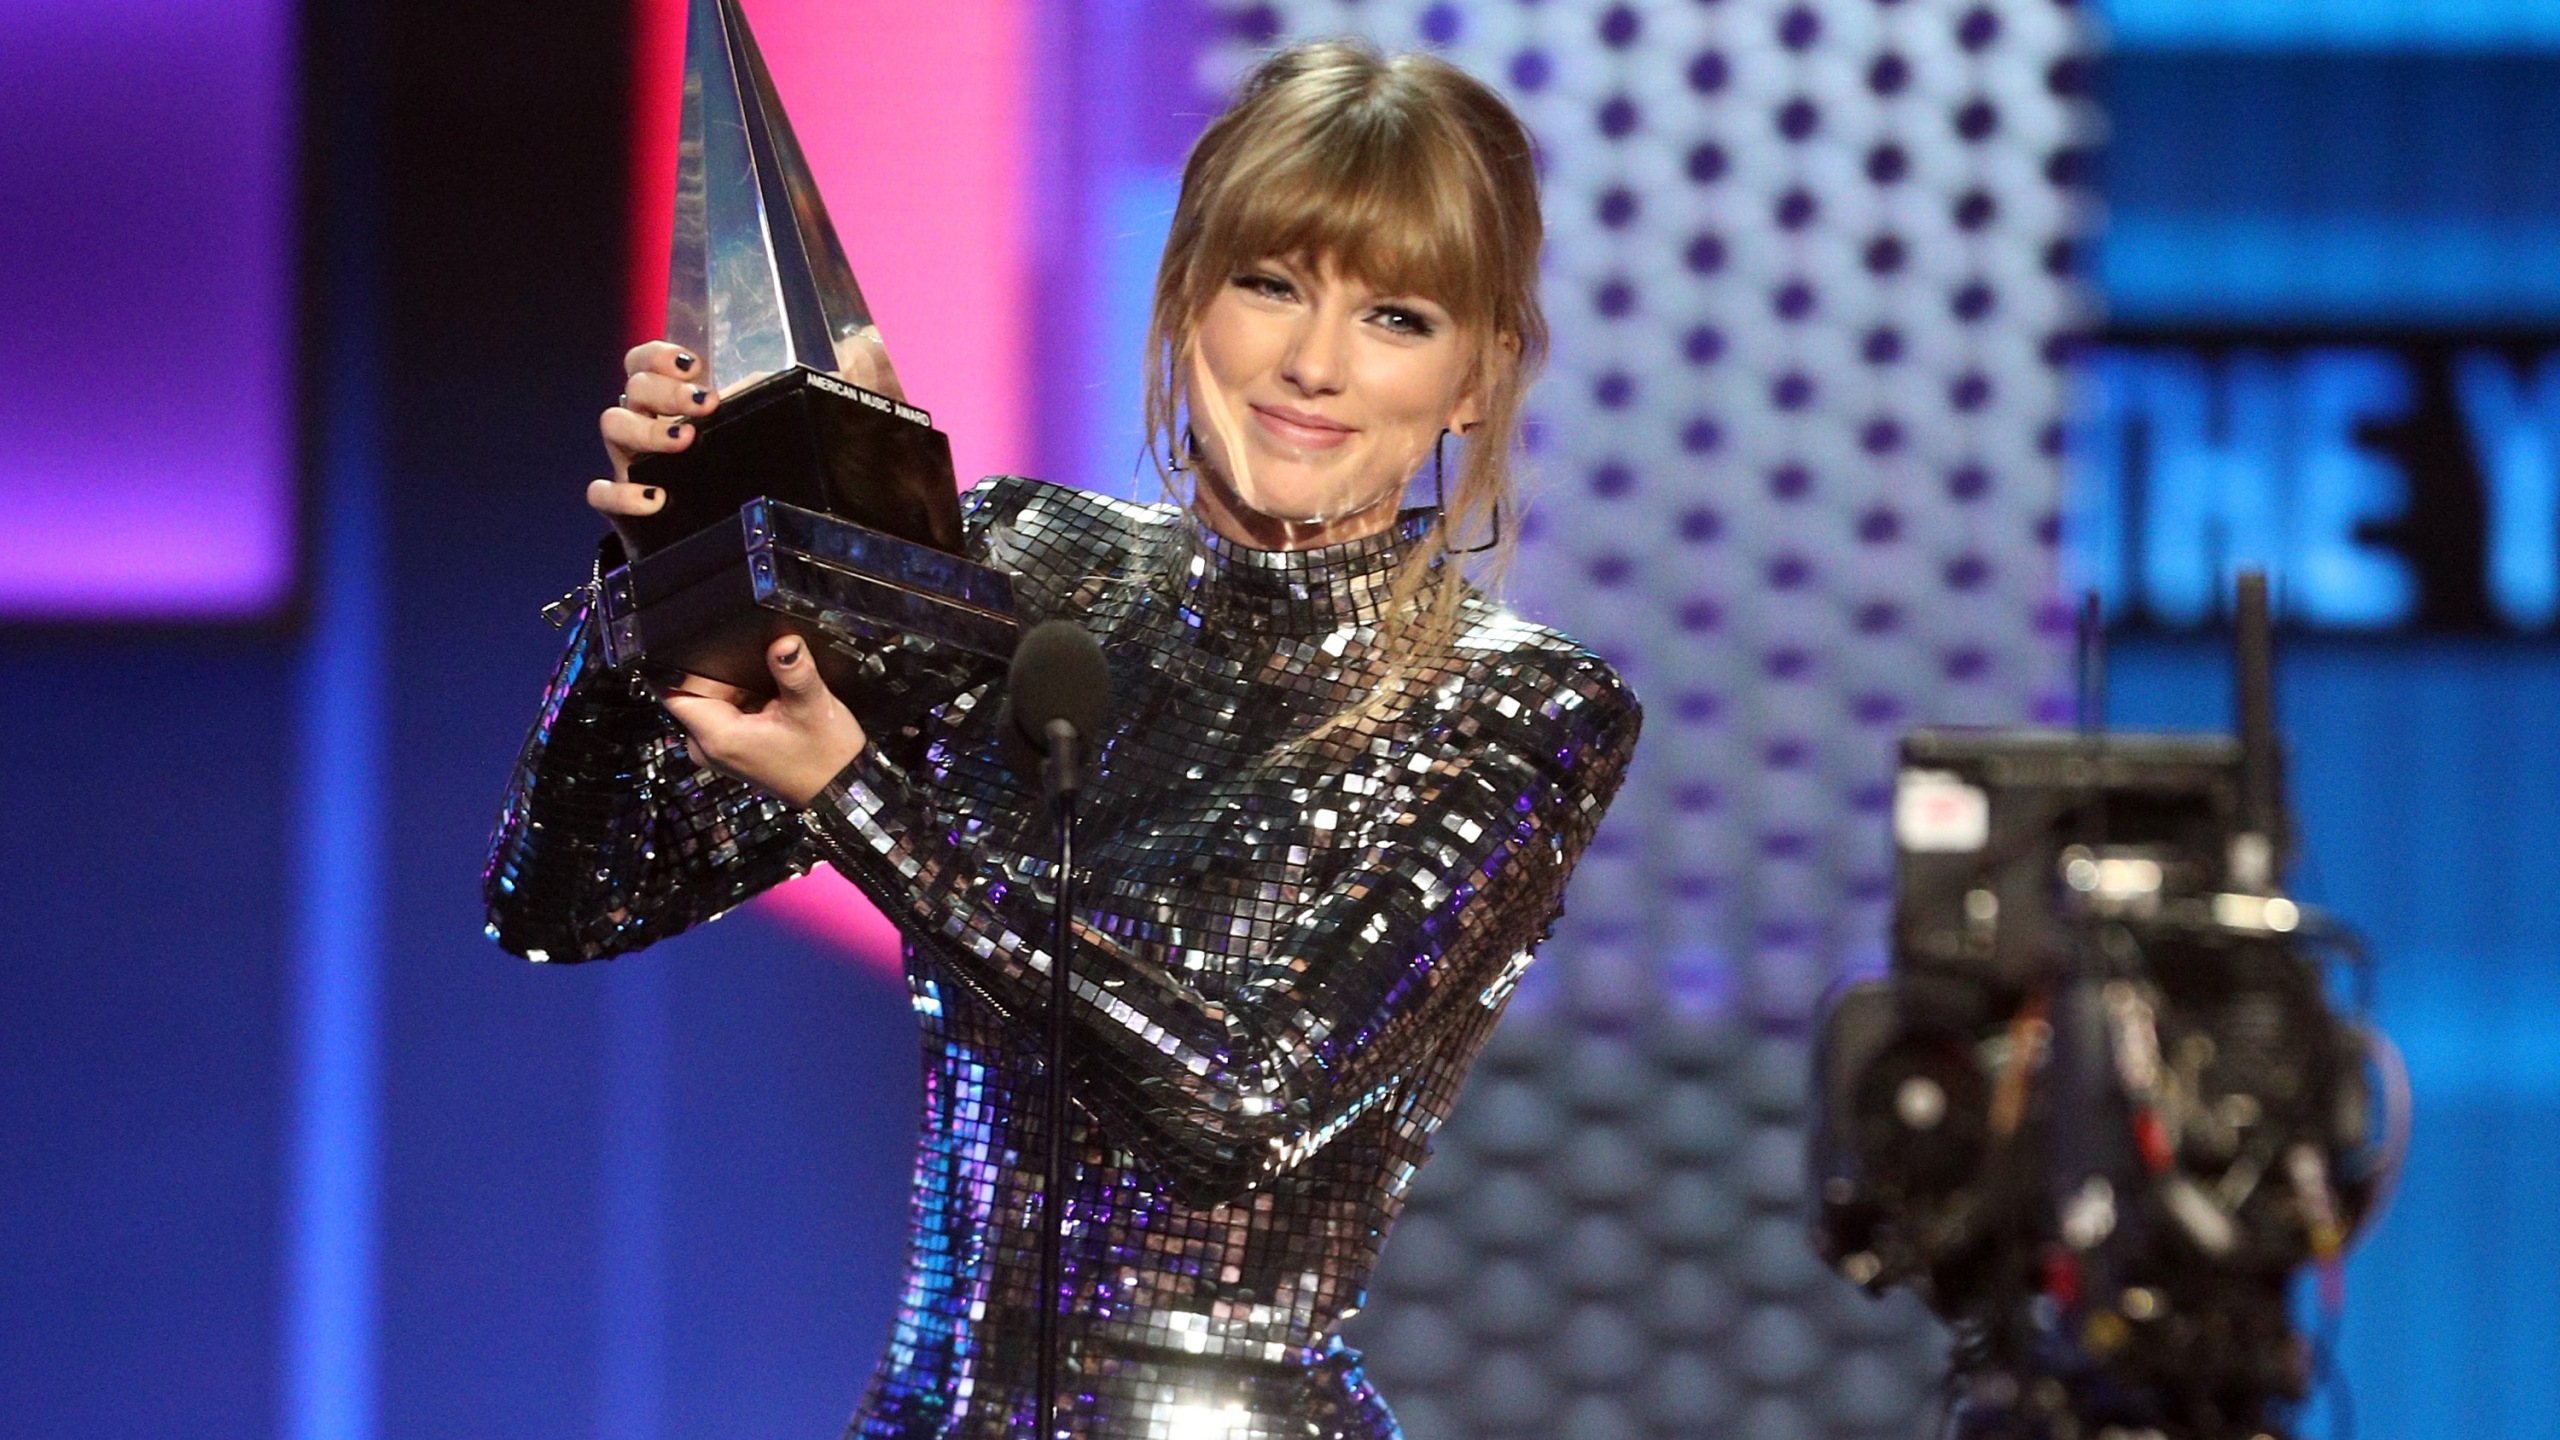 Taylor Swift accepts the Artist of the Year award onstage during the 2018 American Music Awards at Microsoft Theater on Oct. 9, 2018 in Los Angeles. (Credit: Frederick M. Brown / Getty Images)